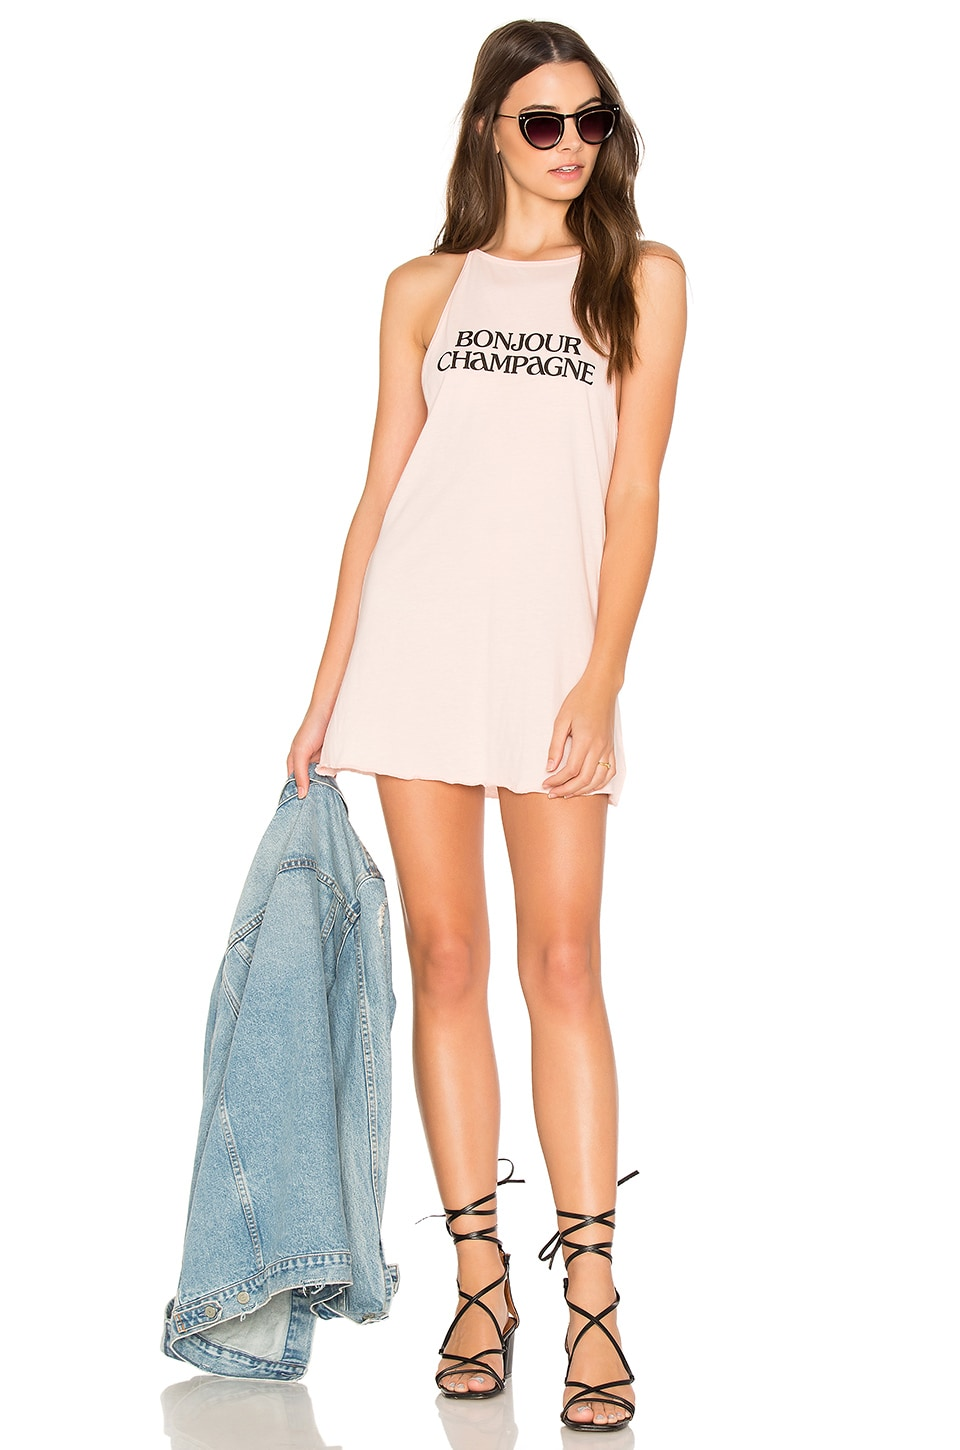 Bonjour Champagne Tank Dress by The Laundry Room